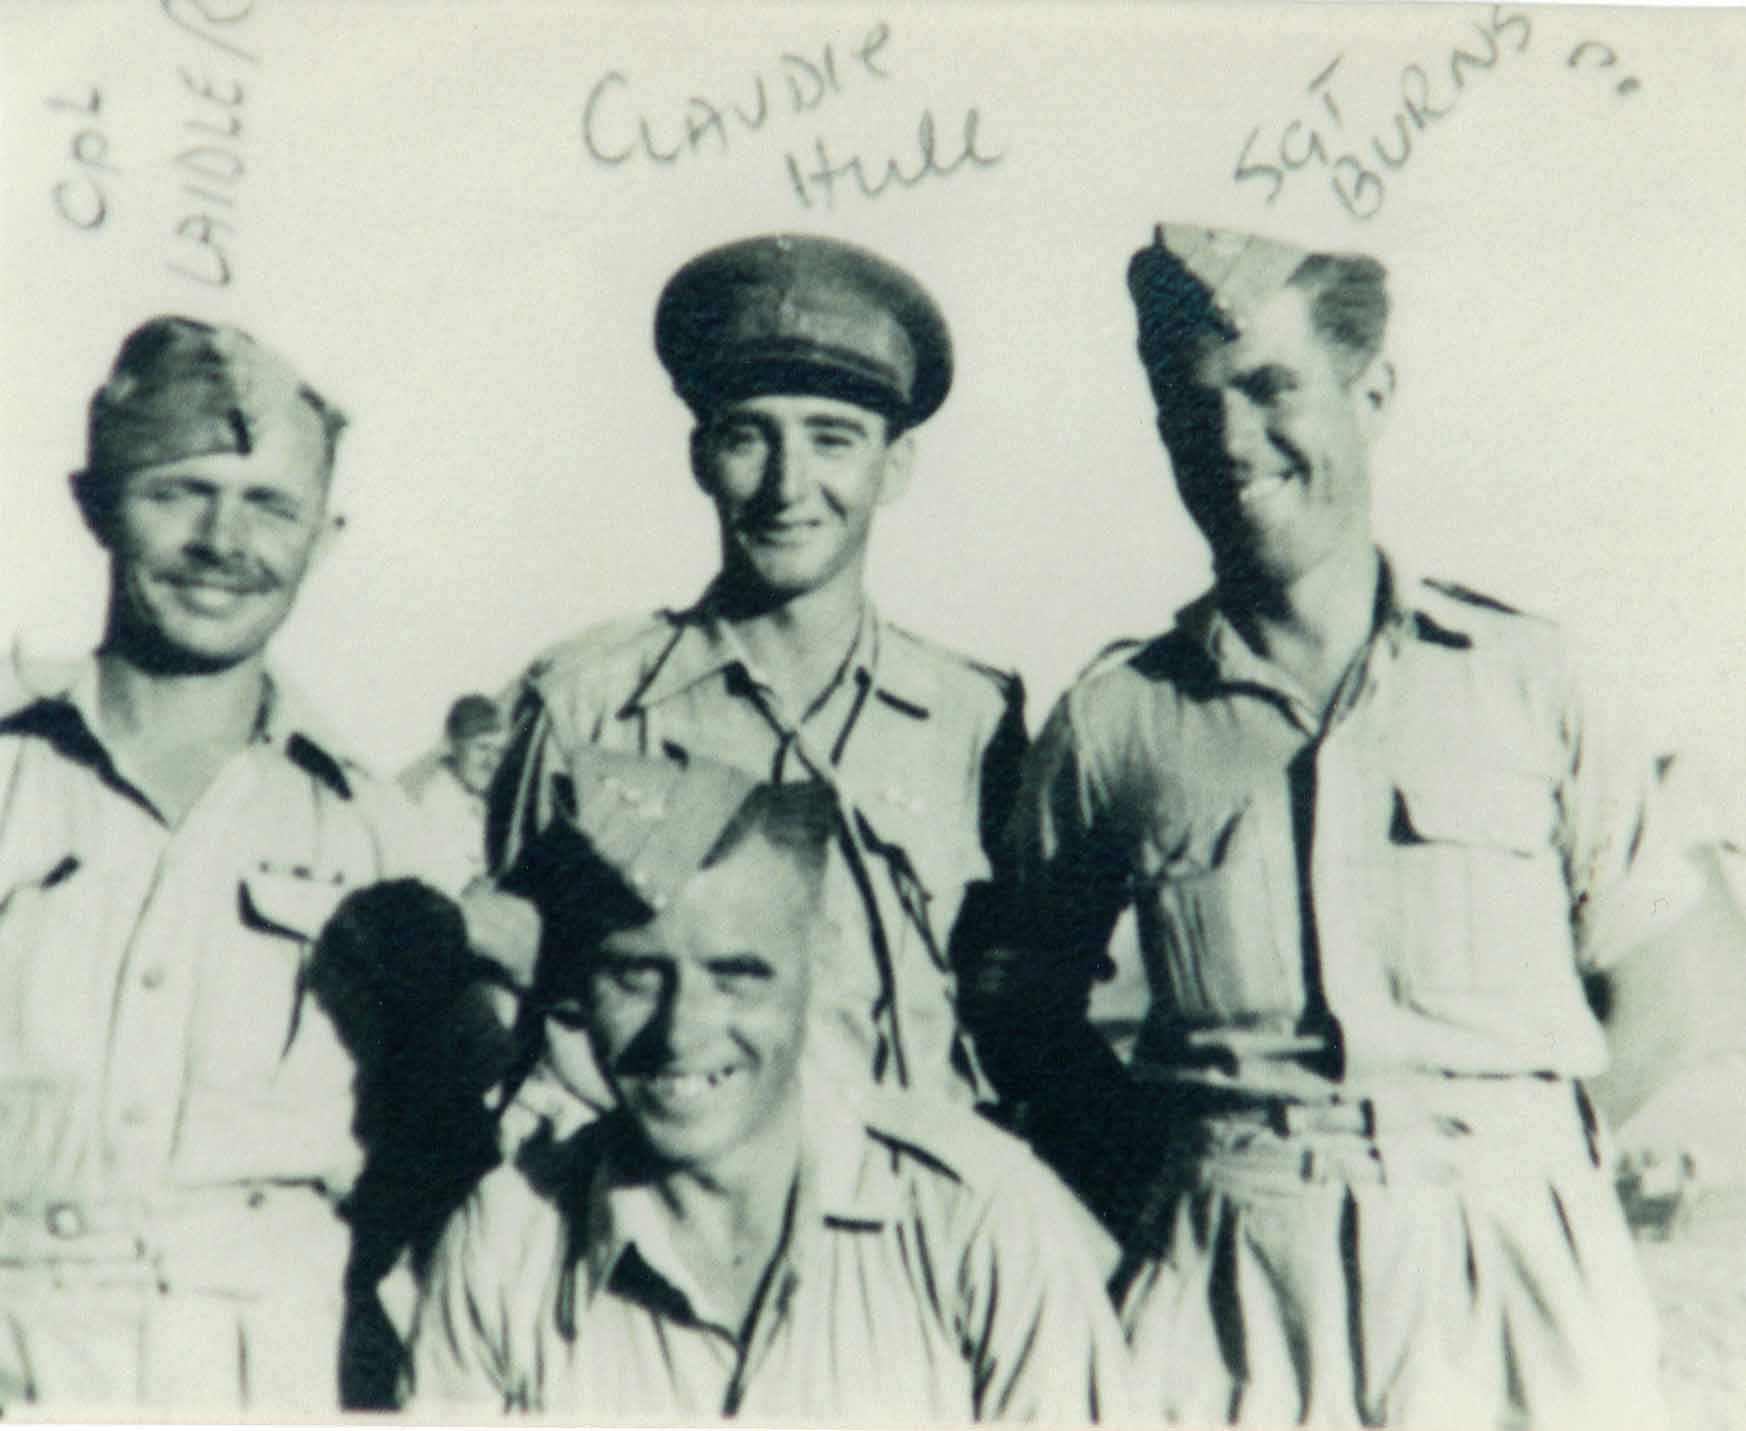 Claude Macdonald Hull with Sgt Burns and Cpl Laidler WW2 diary war story book